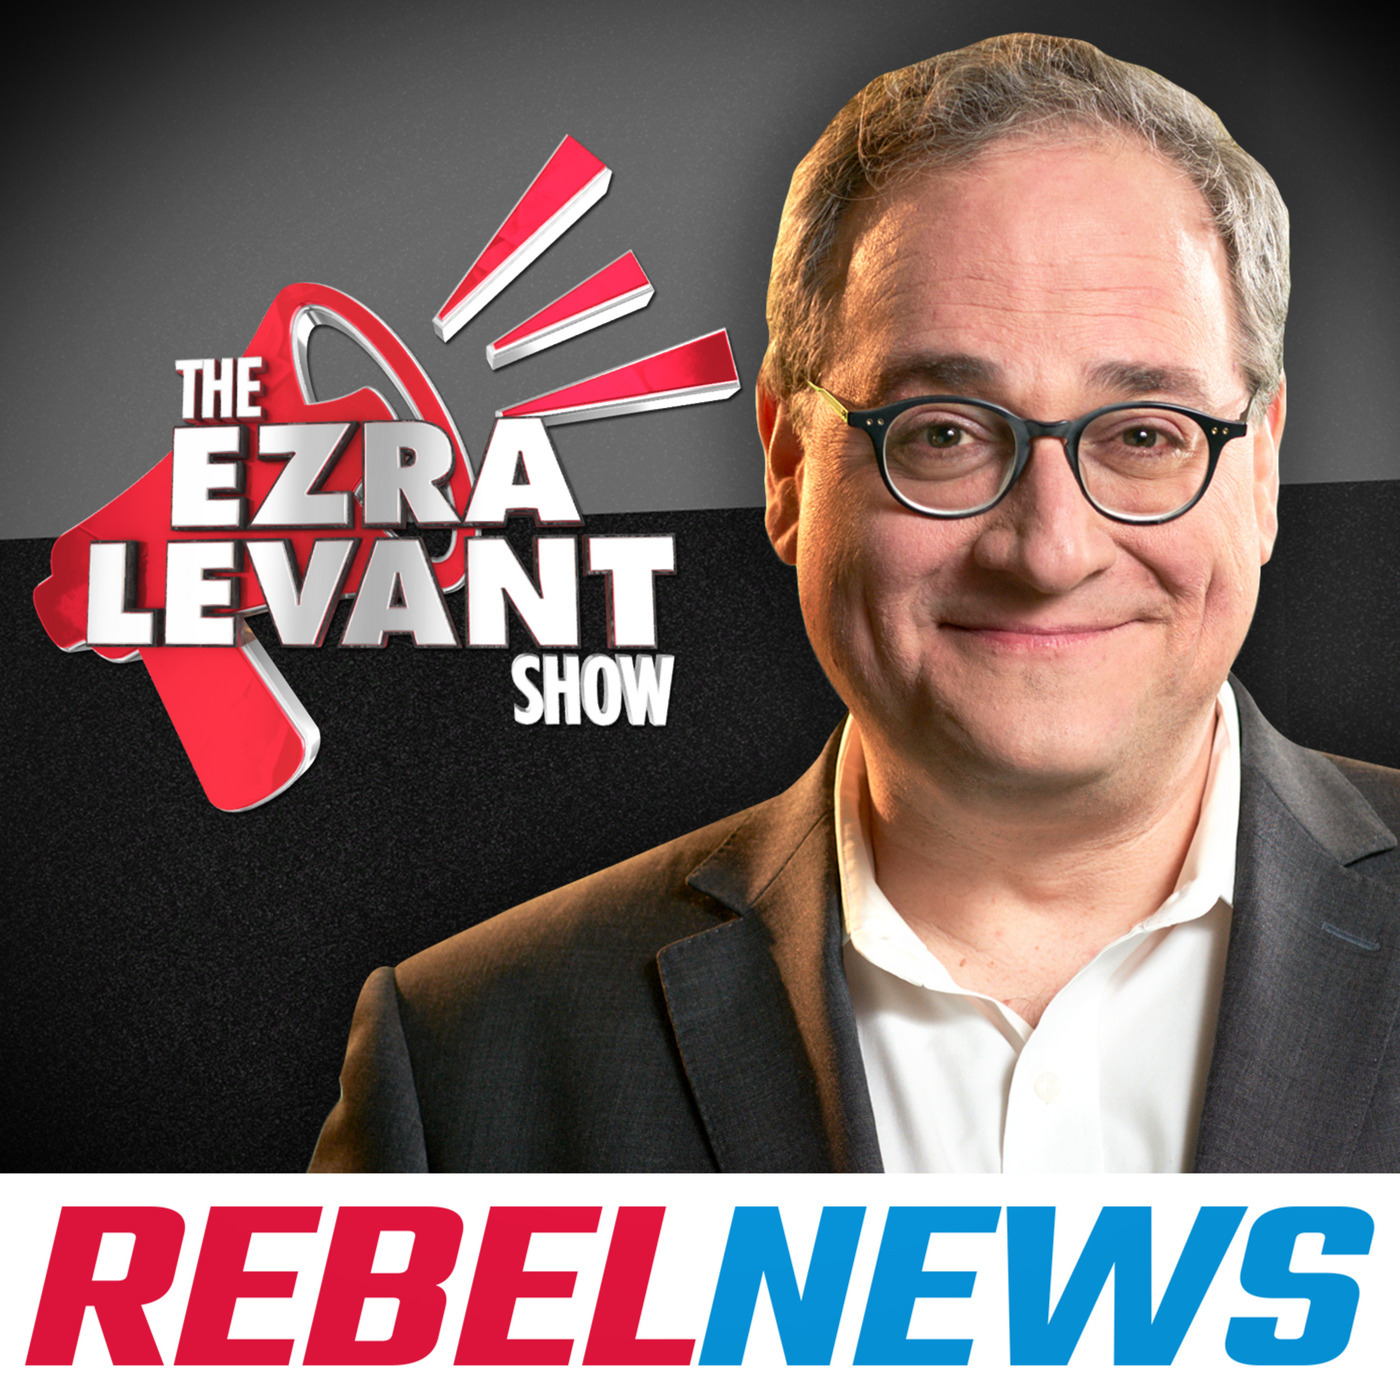 Rebel News: EZRA LEVANT | Alberta has gone from normal to crazy back to normal again